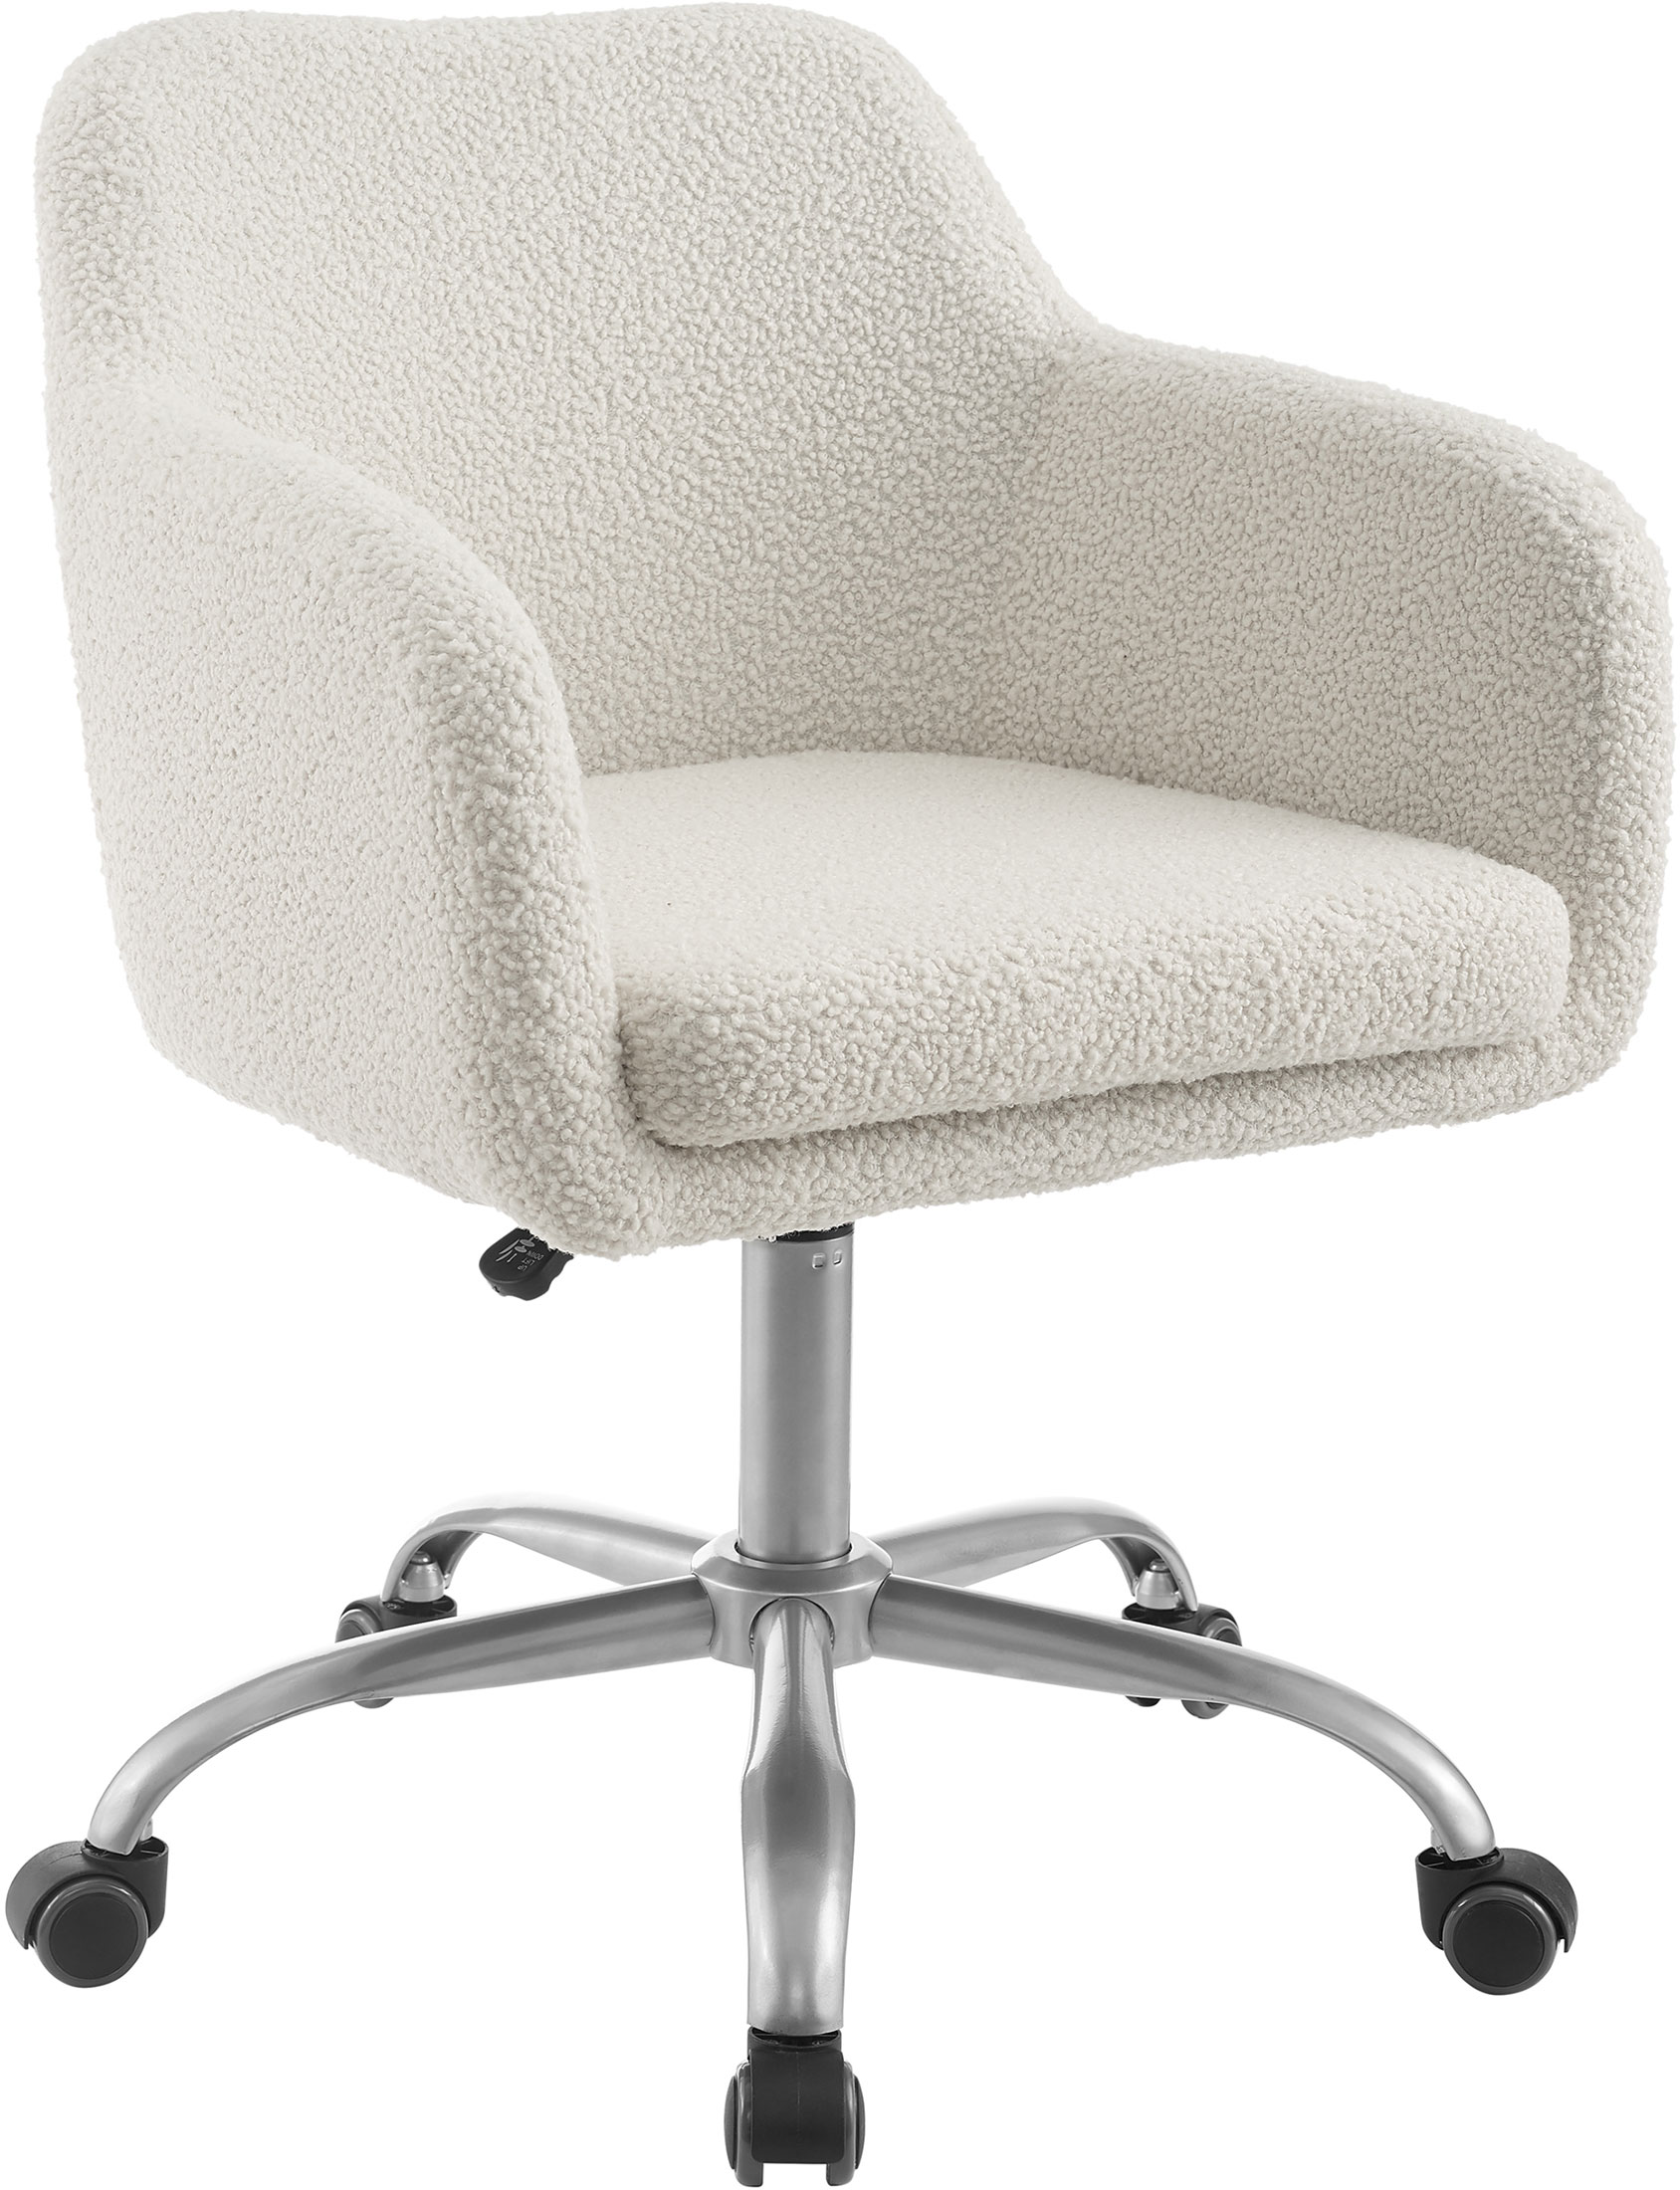 Home Office Furniture - Coco Office Chair